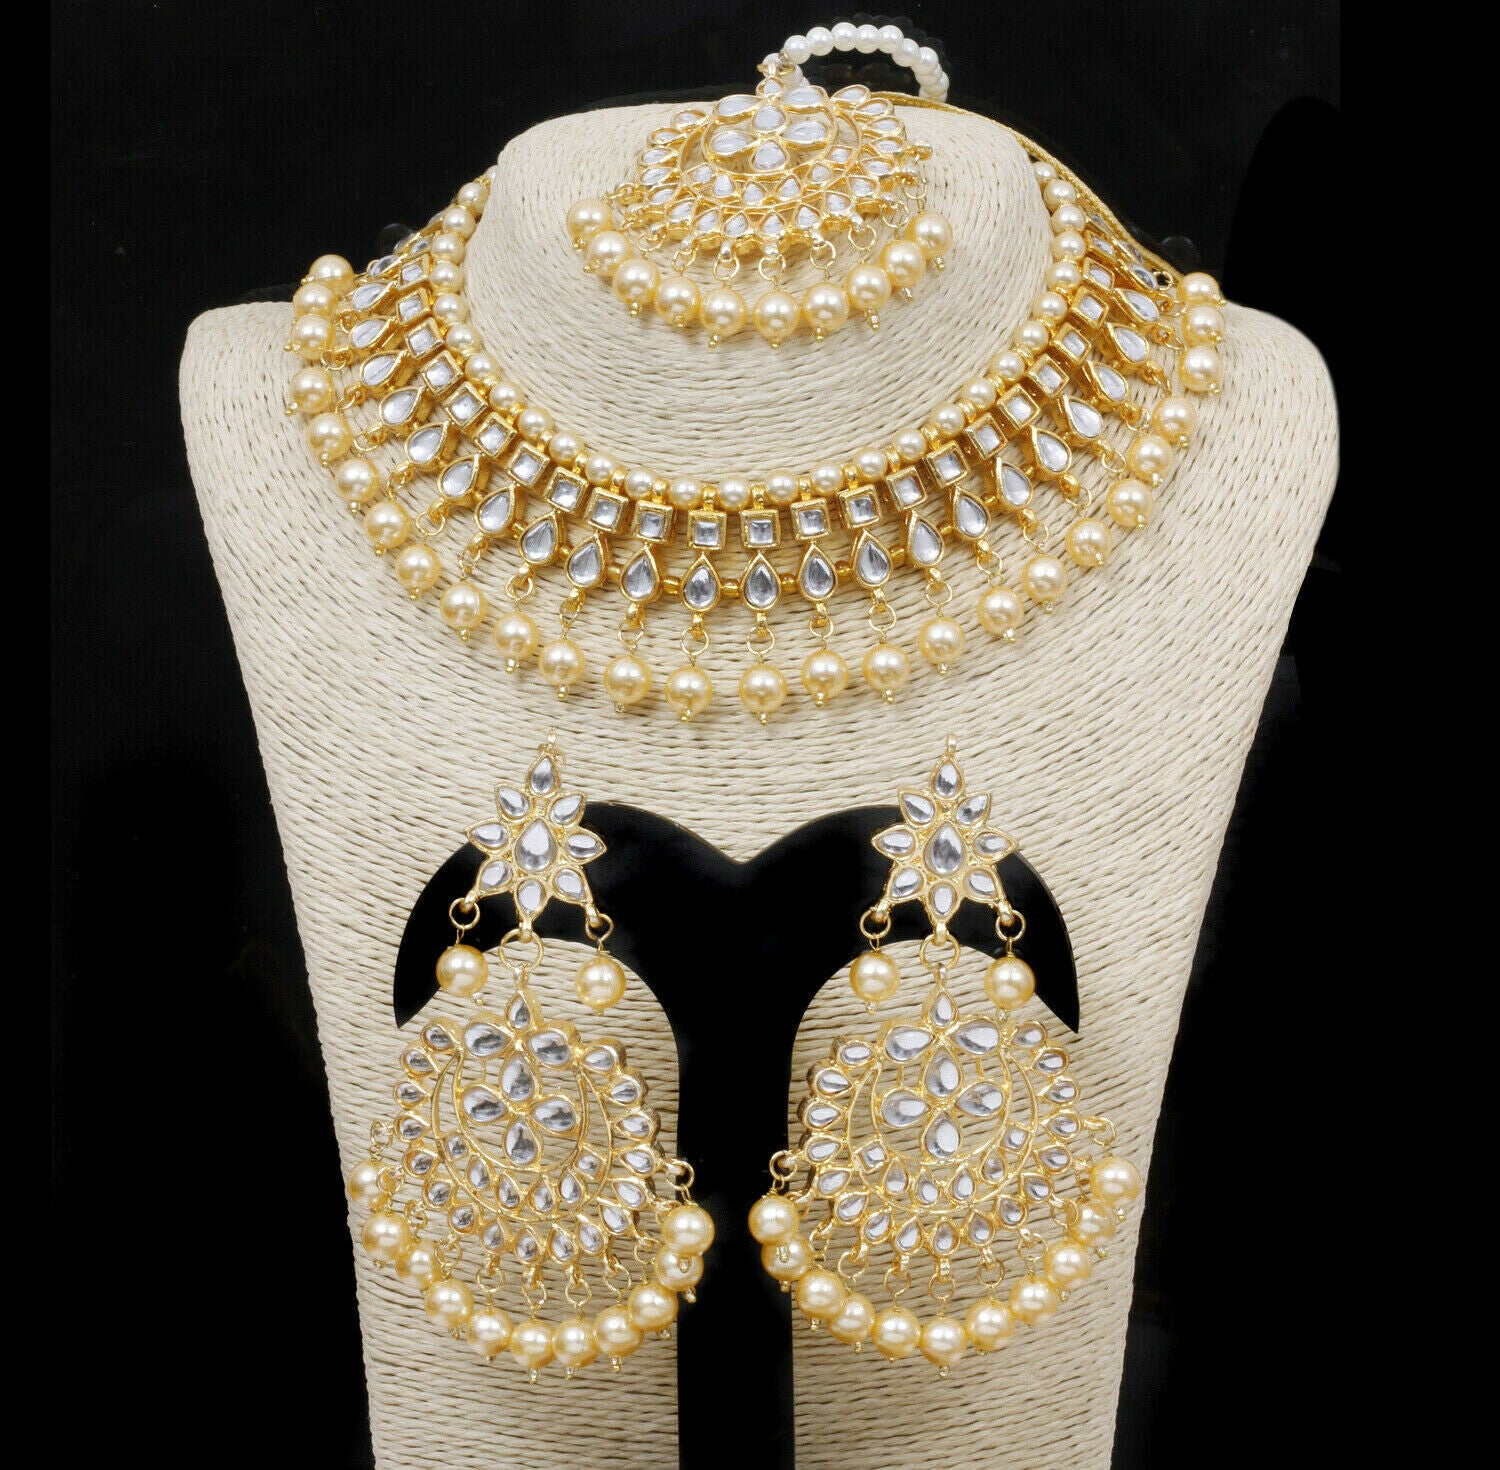 Pakistani Traditional Handmade Kundan Gold Plated Necklace With Earrings Jewelry Set - FashionEmpire'86